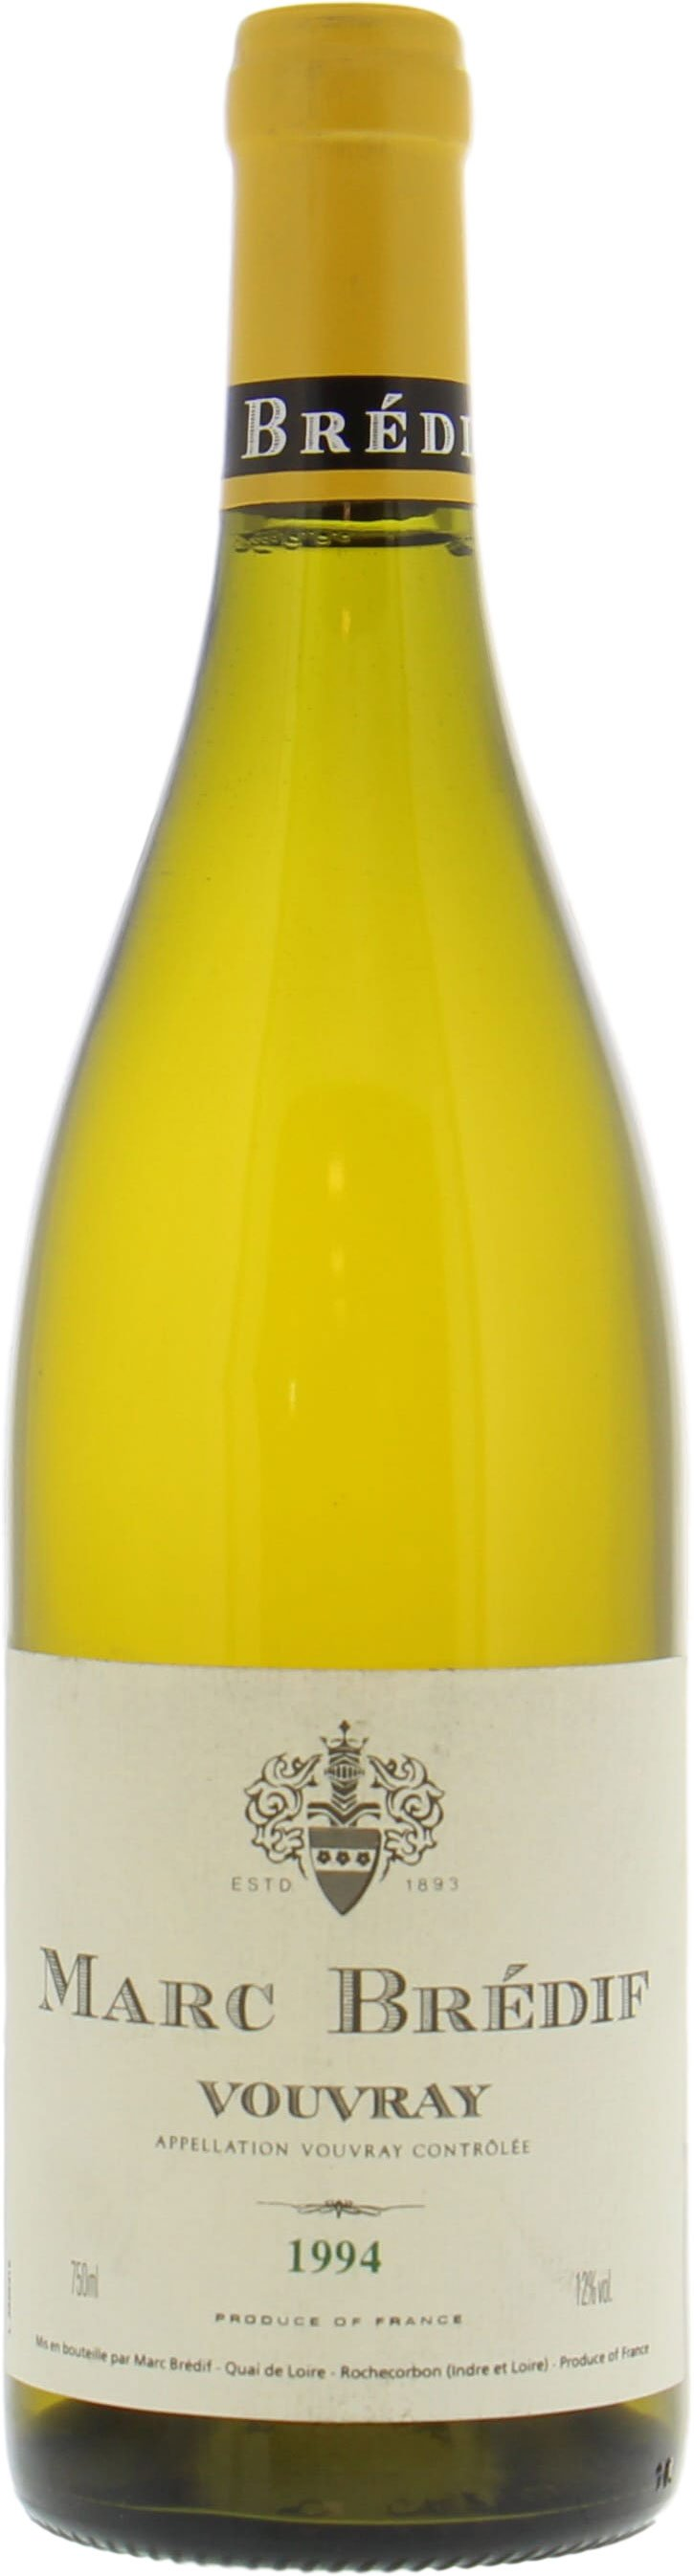 Marc Bredif - Vouvray Grandes Annee 1994